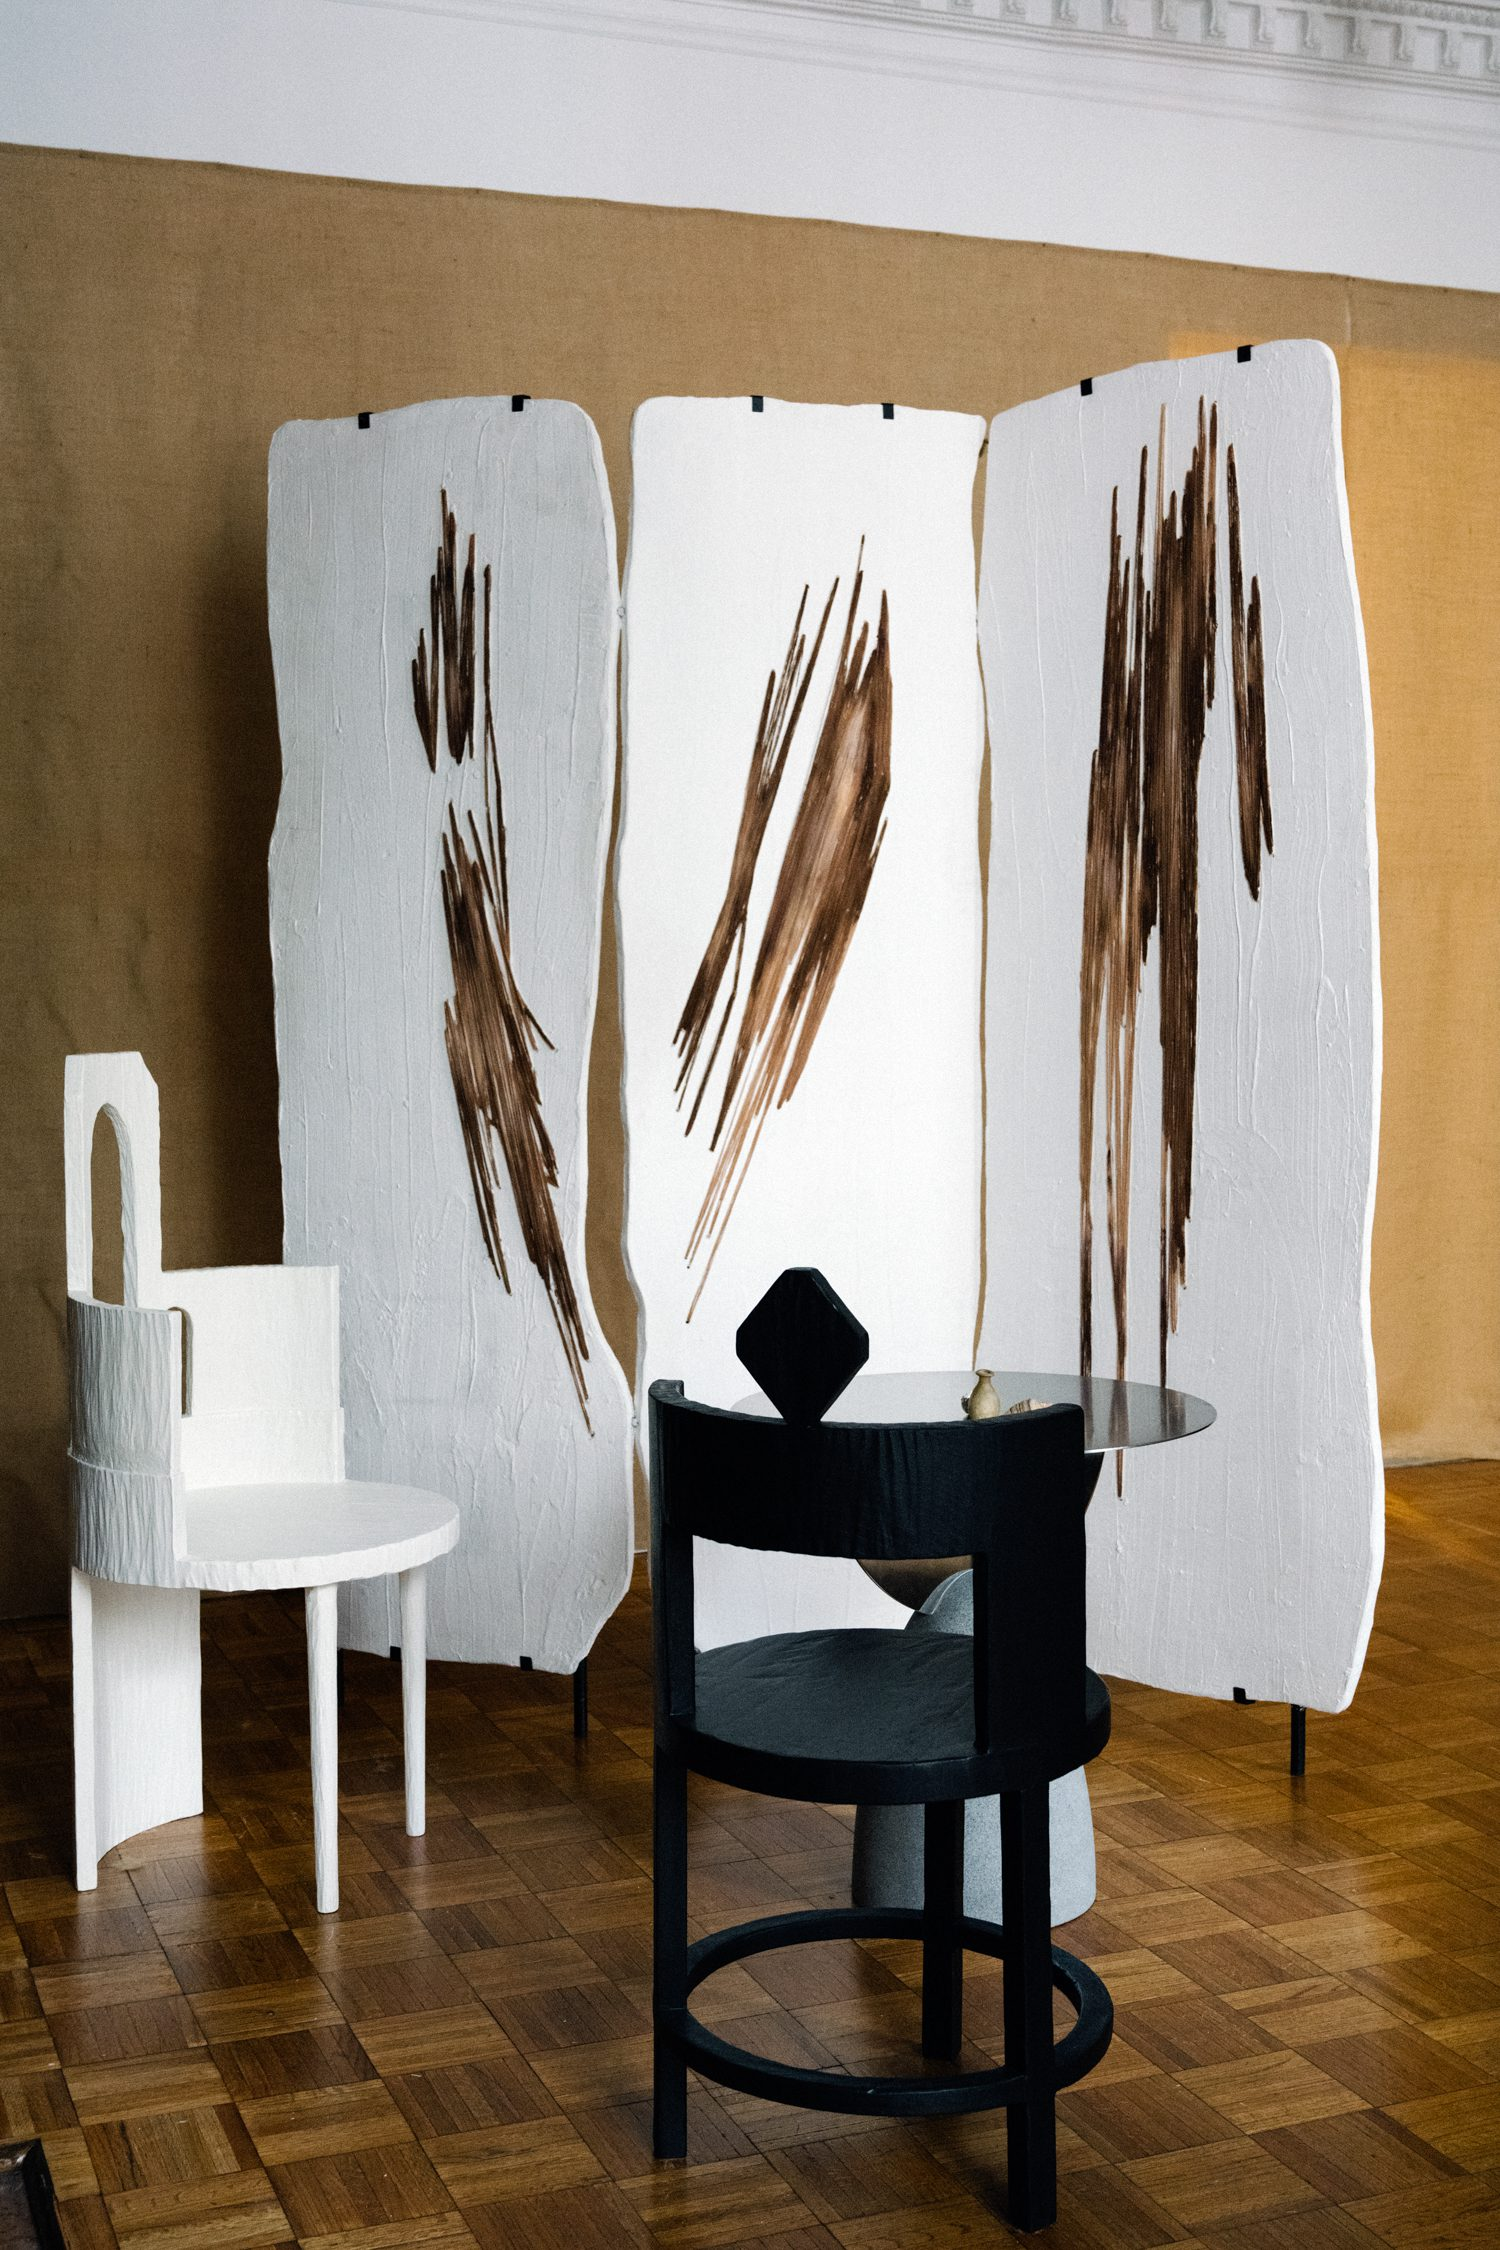 Gateway room divider, in collaboration with Salome Chigilashvili, features embroidery on polymer and plaster. Shown with the pair's Sculptural Chairs I and III.